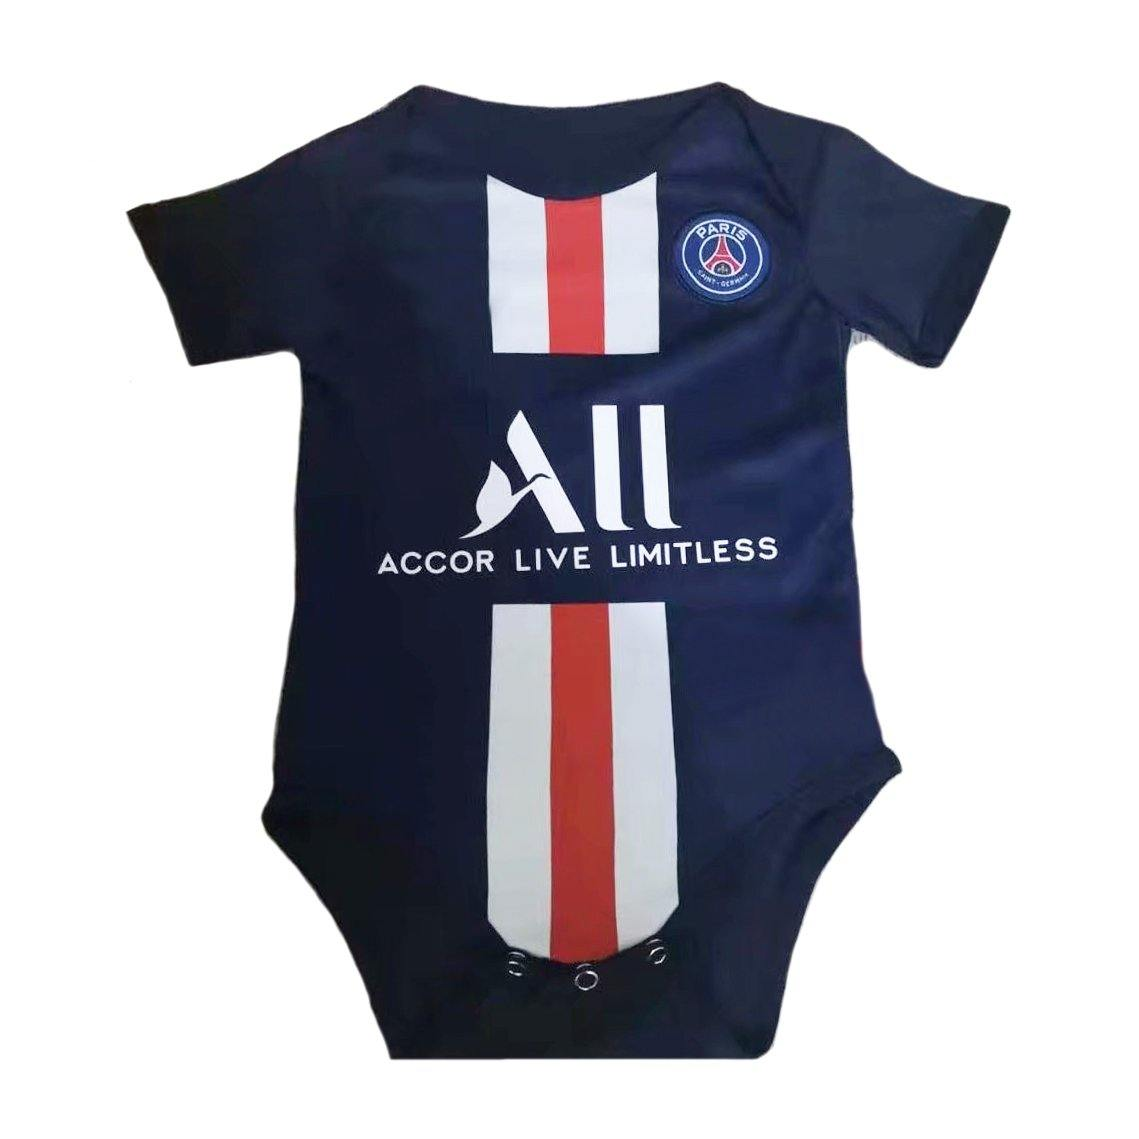 Body Bebe Paris PSG 2020 Foot freeshipping - Foot Online